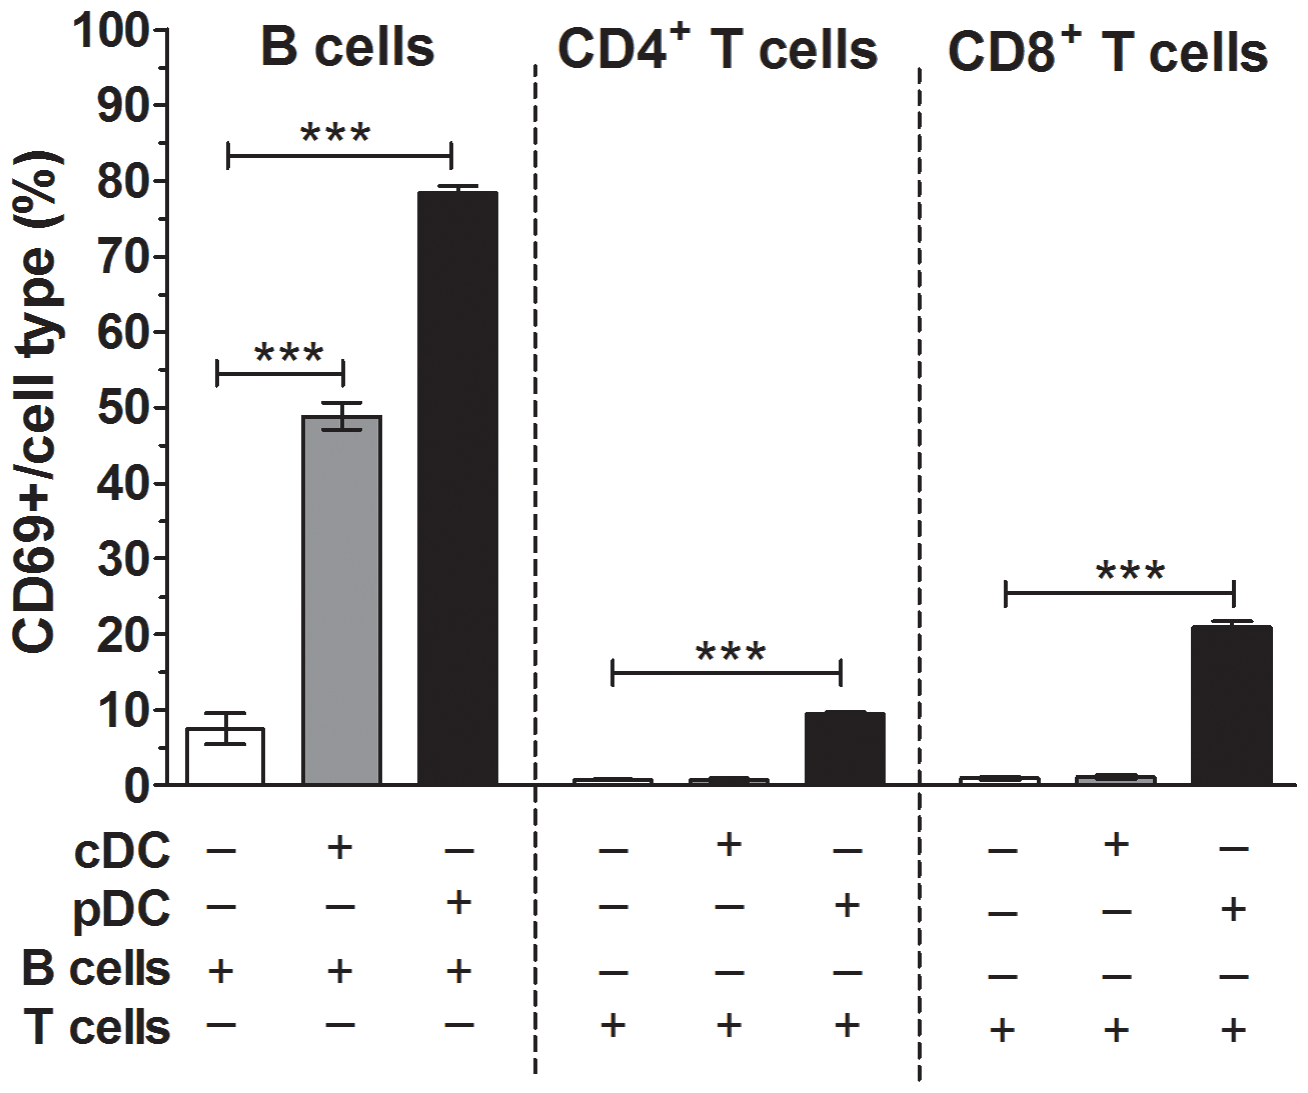 Plasmacytoid DC contributed to B cell and T cell activation by RRV.